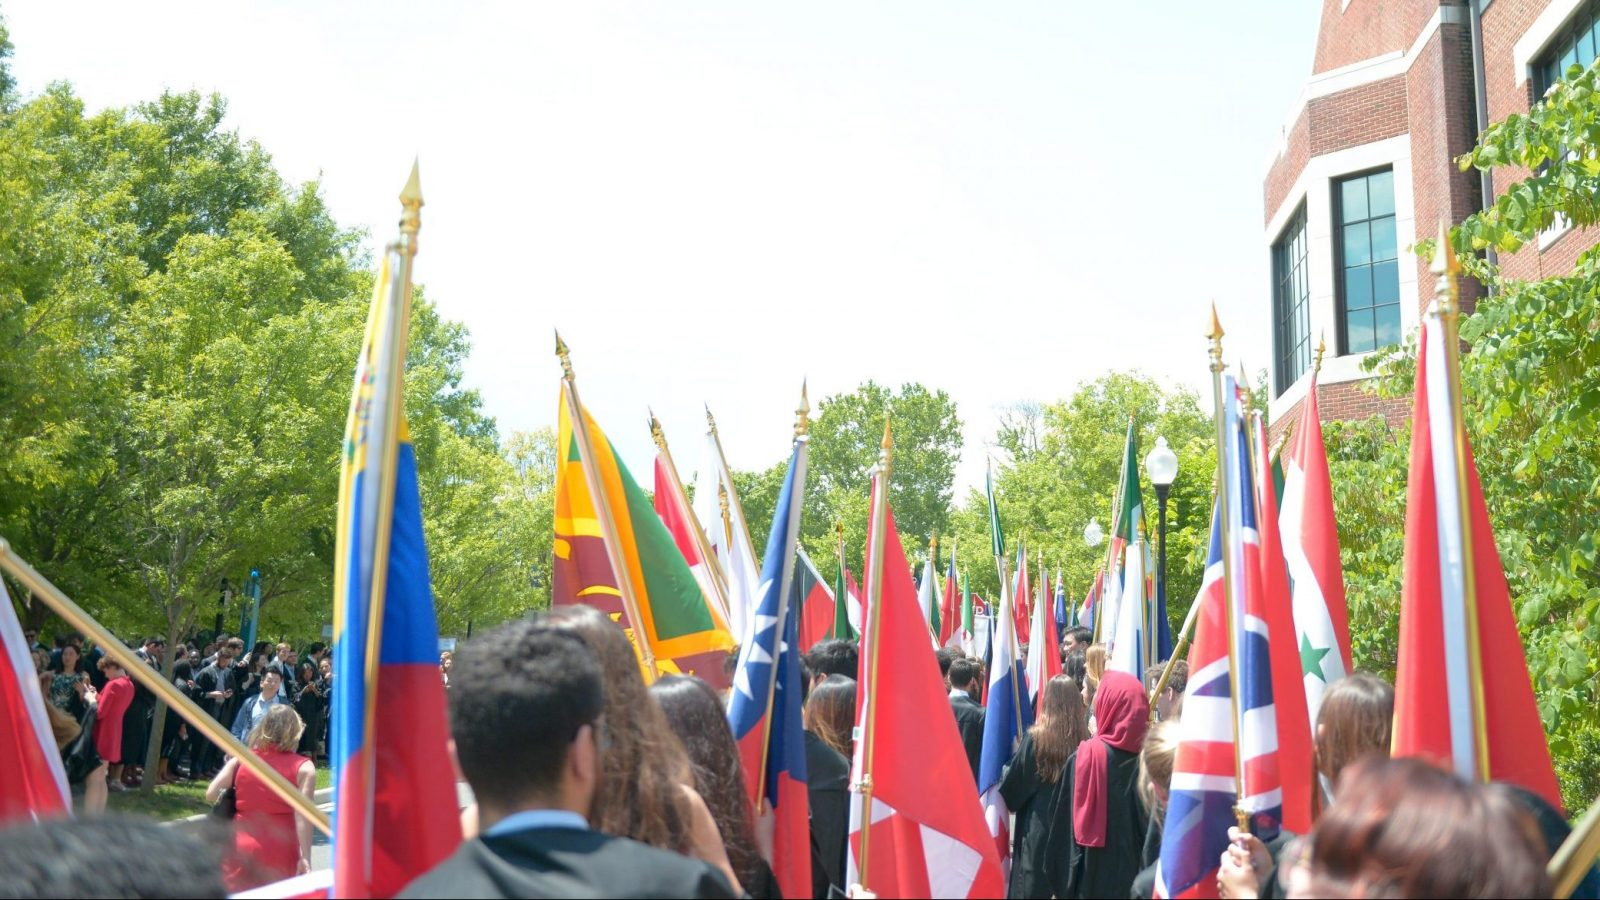 An assortment of flags from various countries.